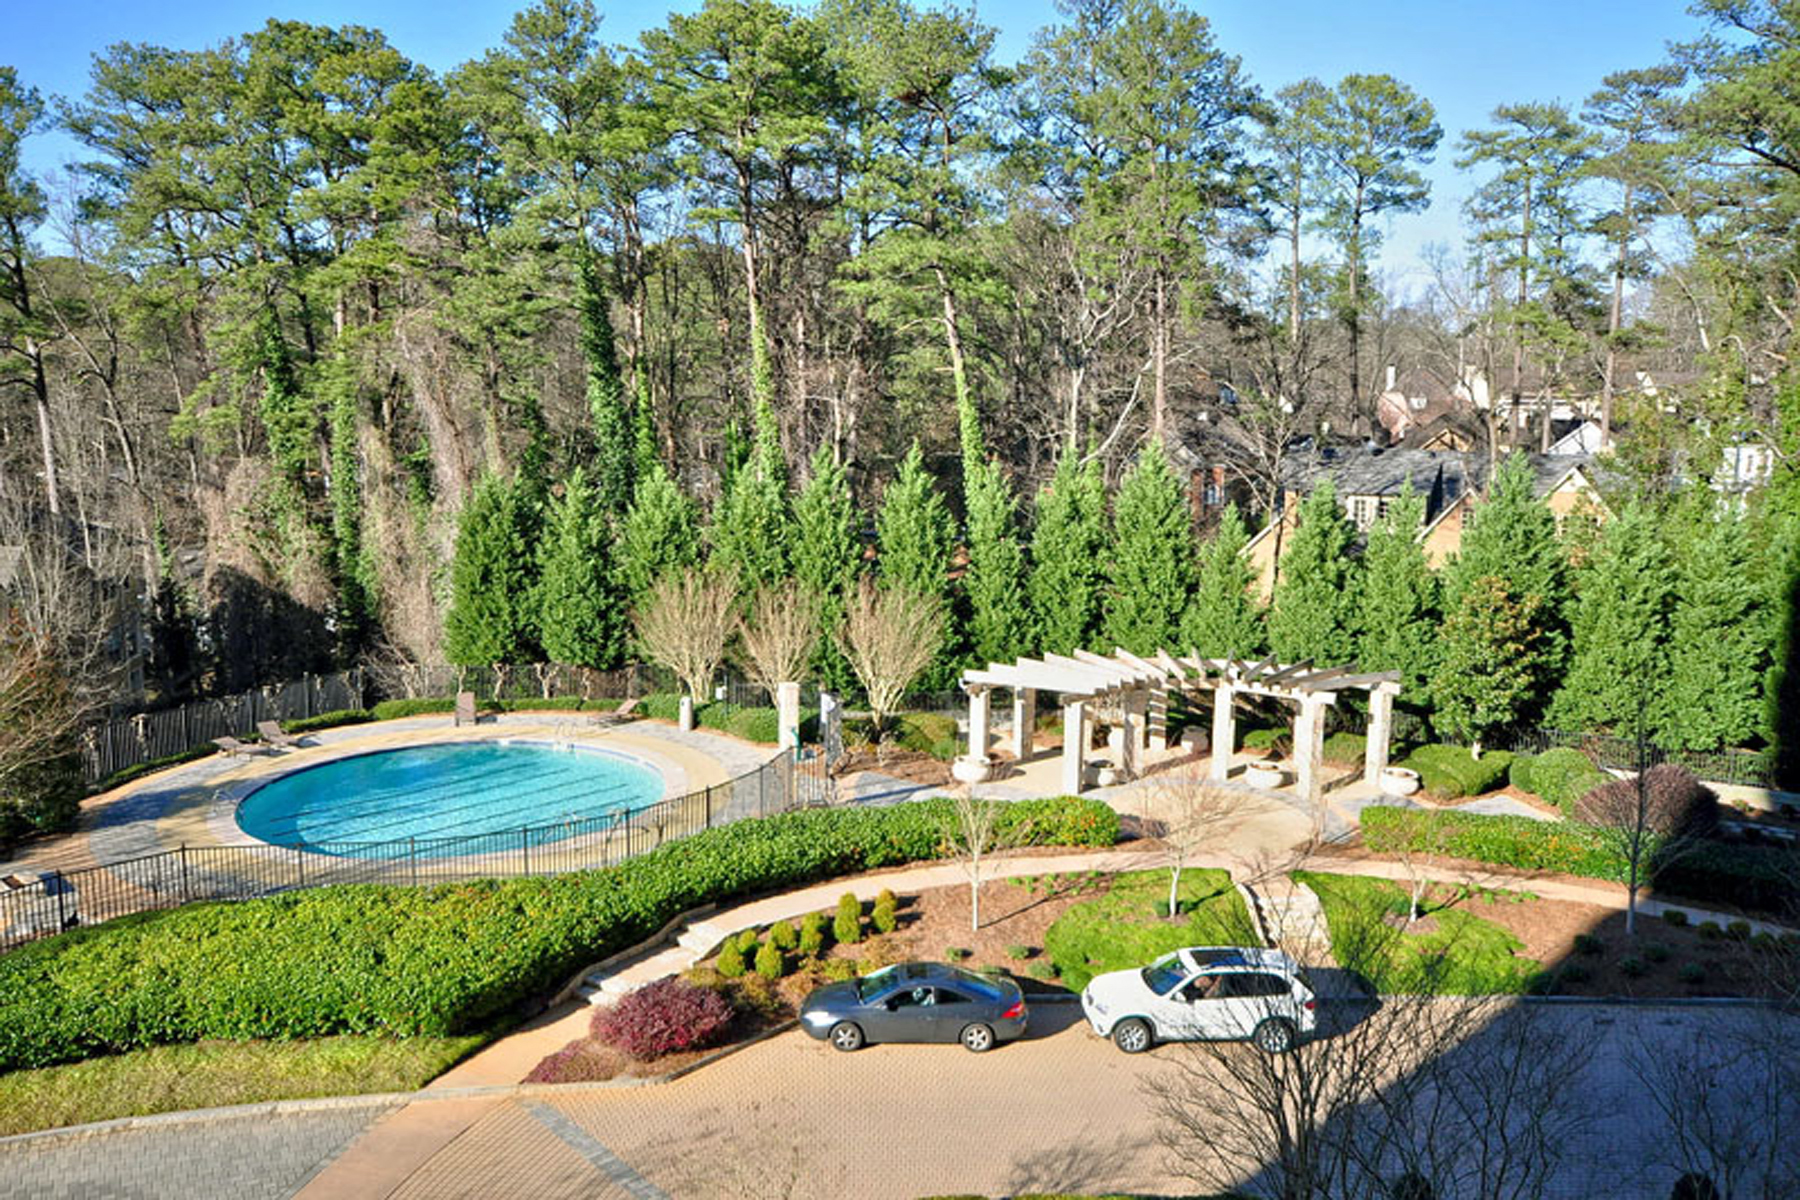 Additional photo for property listing at Luzxury One Bedroom Condo 700 Park Regency Place NE Unit 1202 Atlanta, Georgia 30326 Estados Unidos